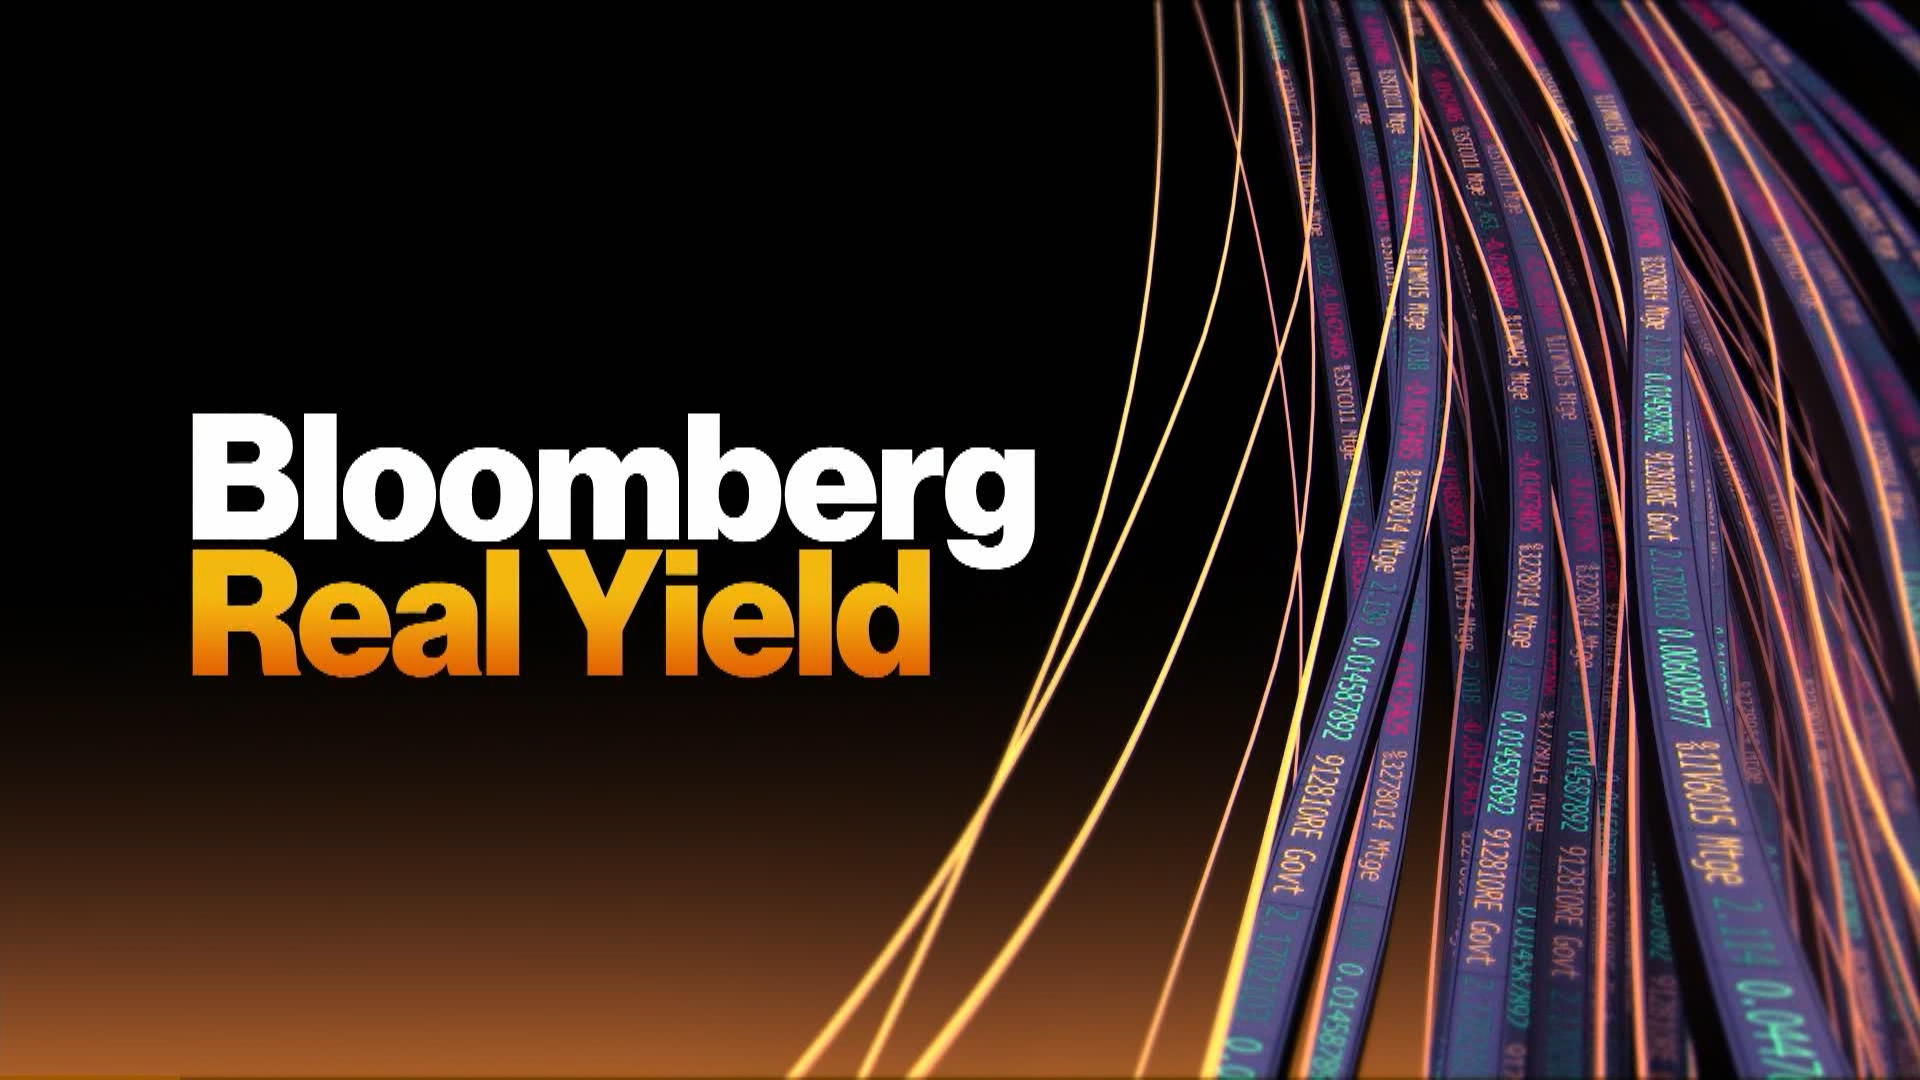 'Bloomberg Real Yield' Full Show (09/06/2019)